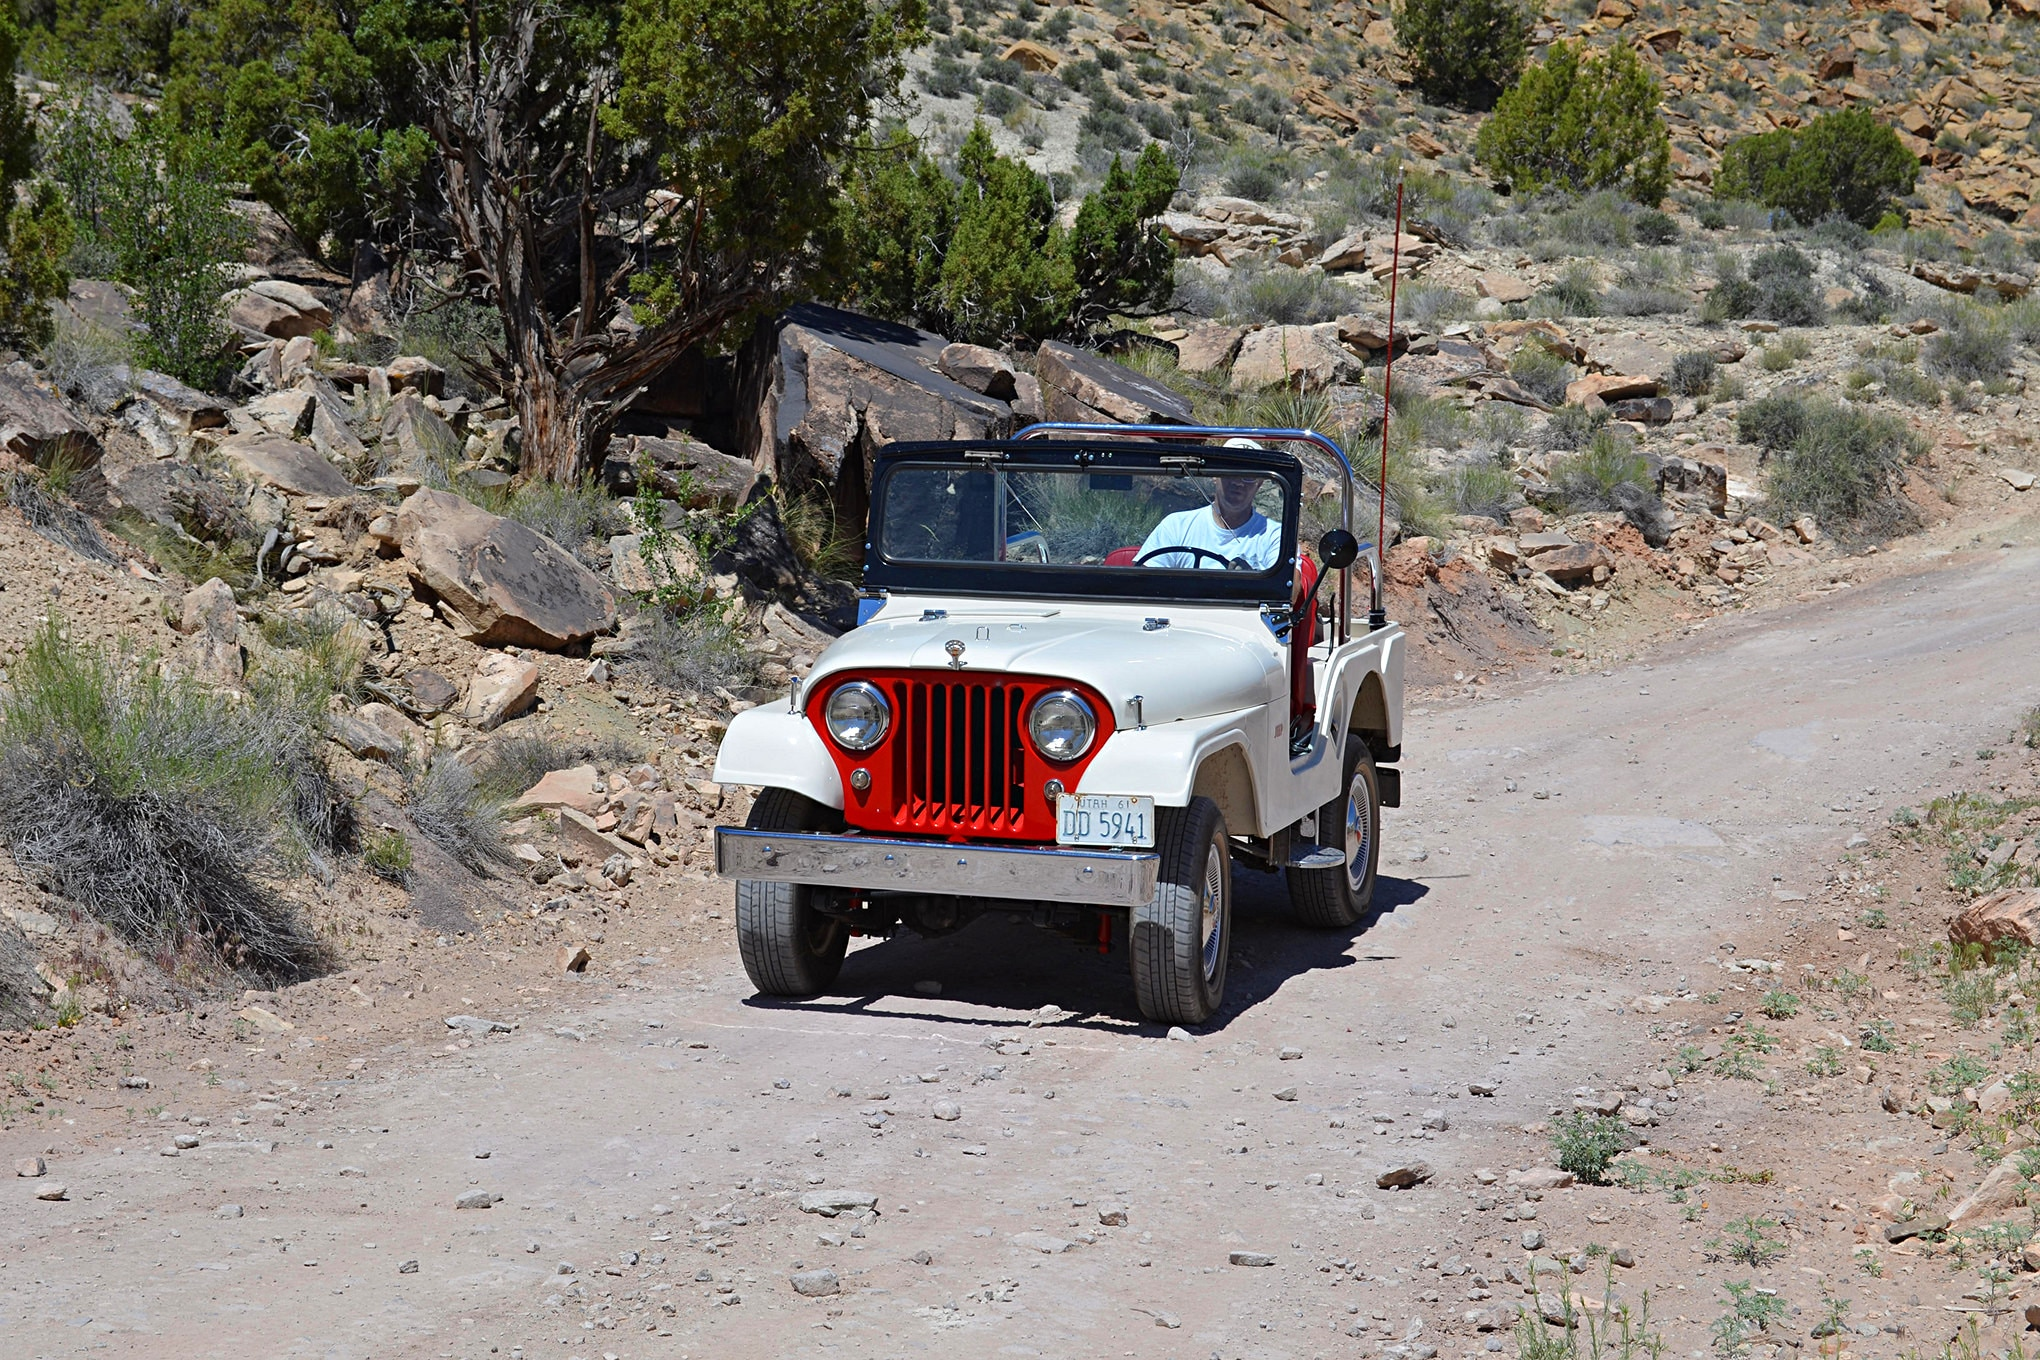 058 willys rally moab 2018 gallery.JPG